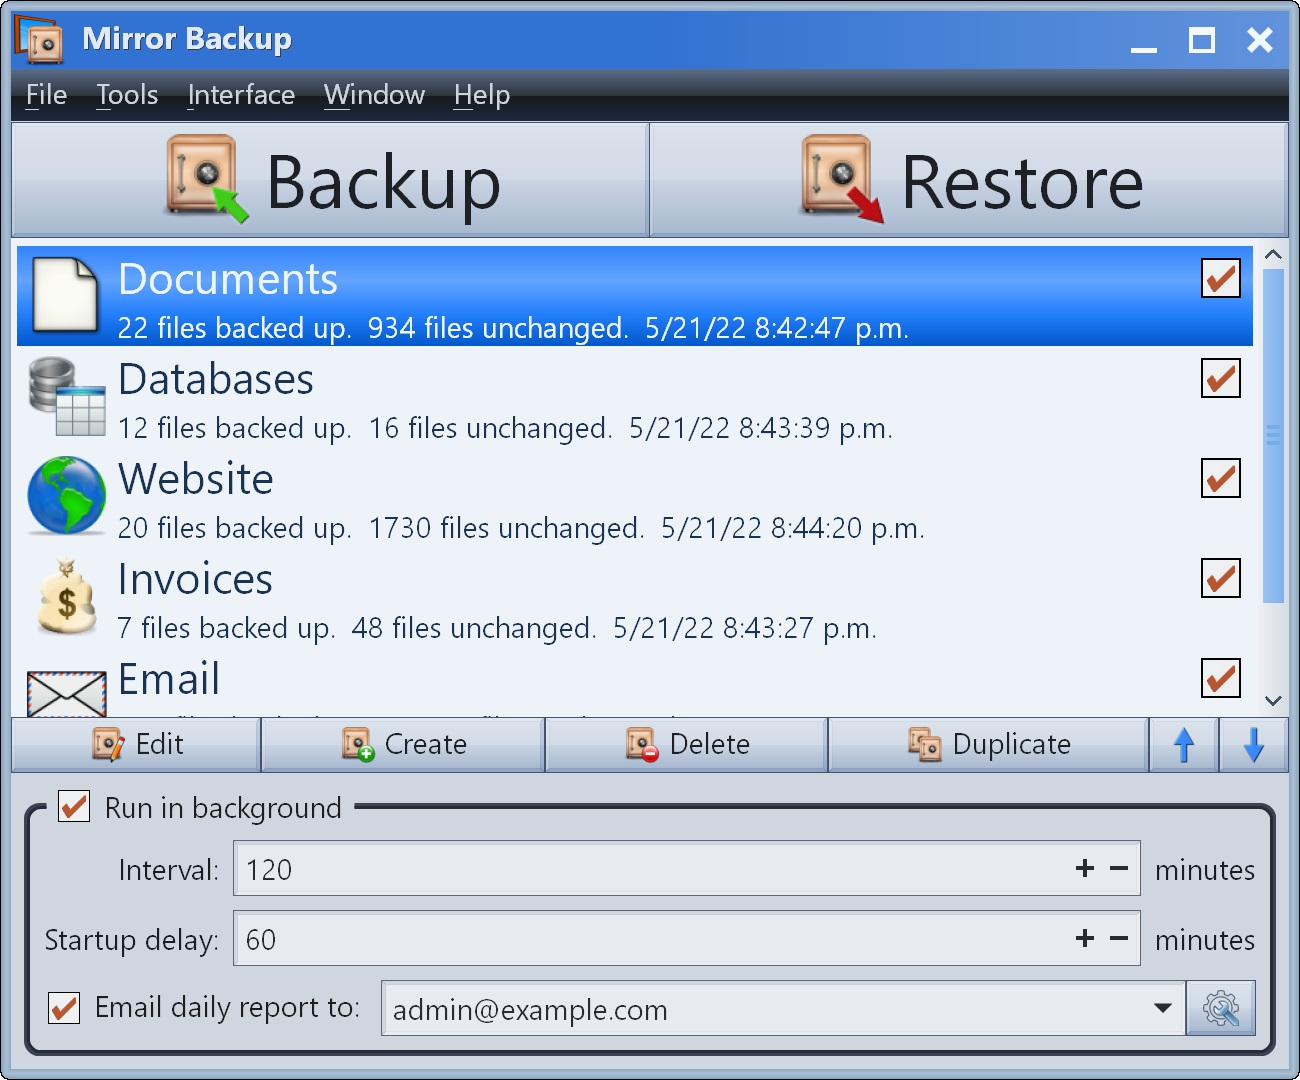 Mirror Backup screenshot #2